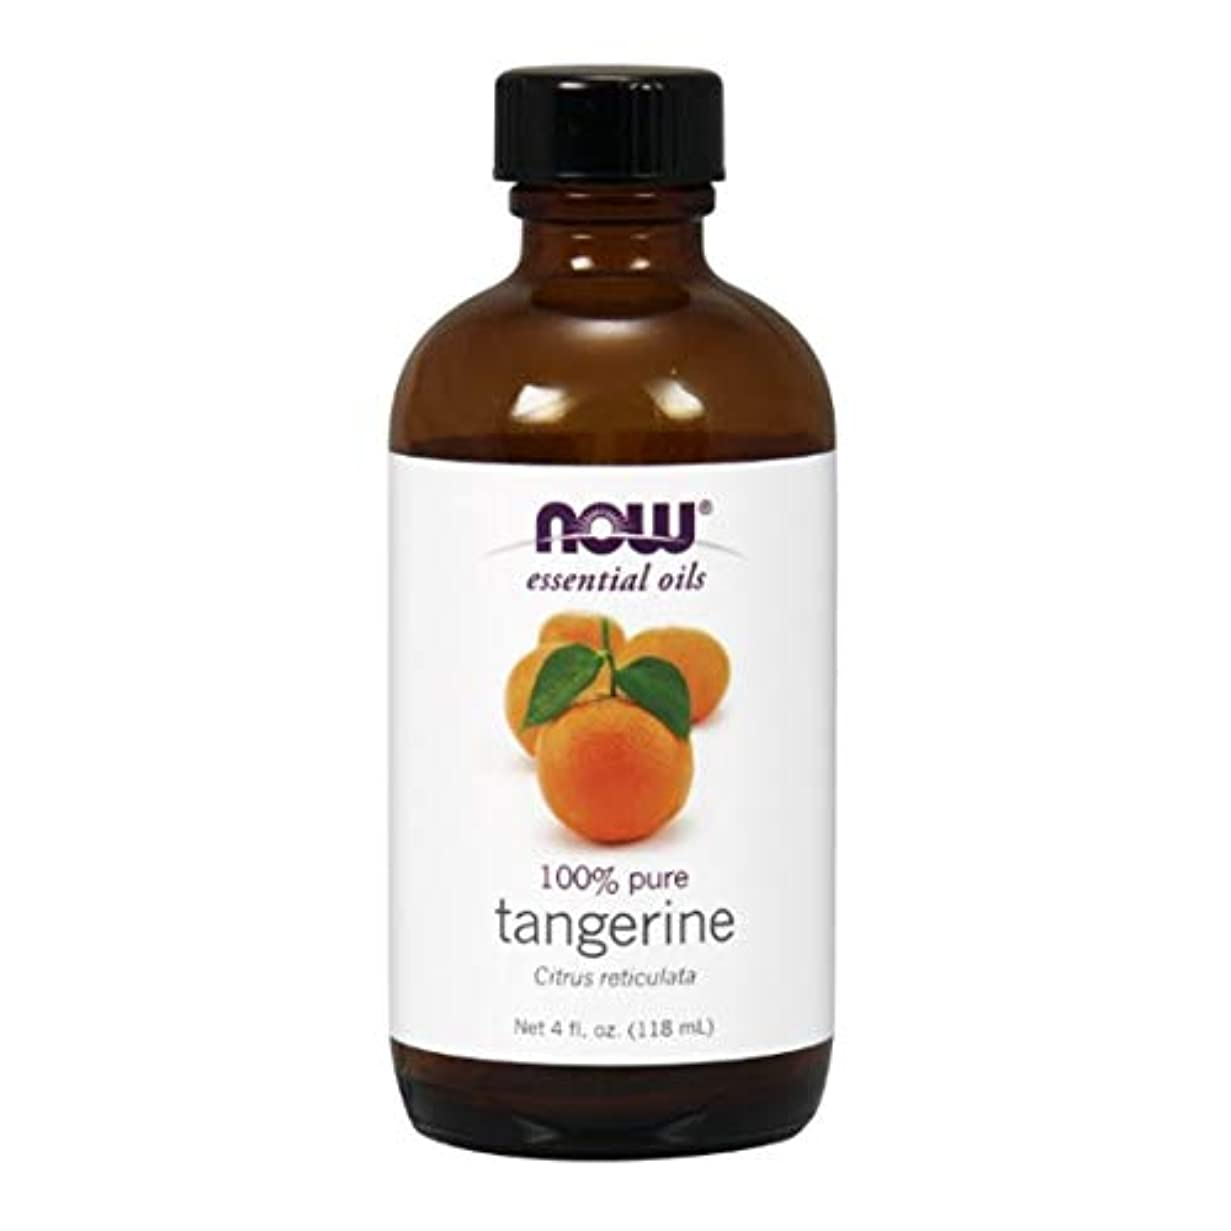 Now - Tangerine Oil 100% Pure 4 oz (118 ml) [並行輸入品]